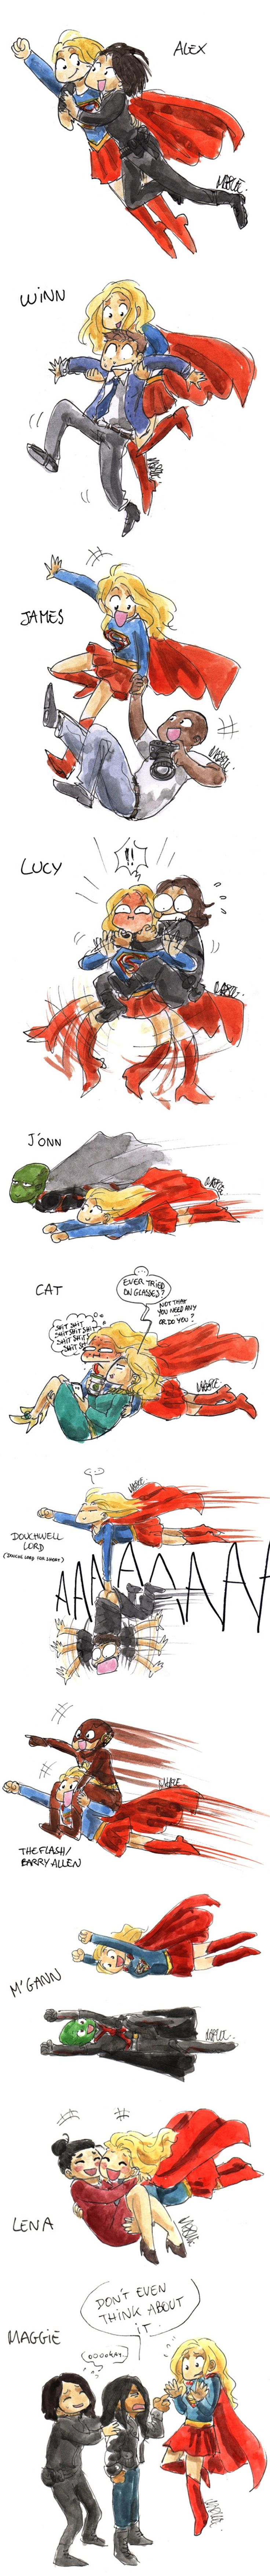 Flying with Supergirl fanart